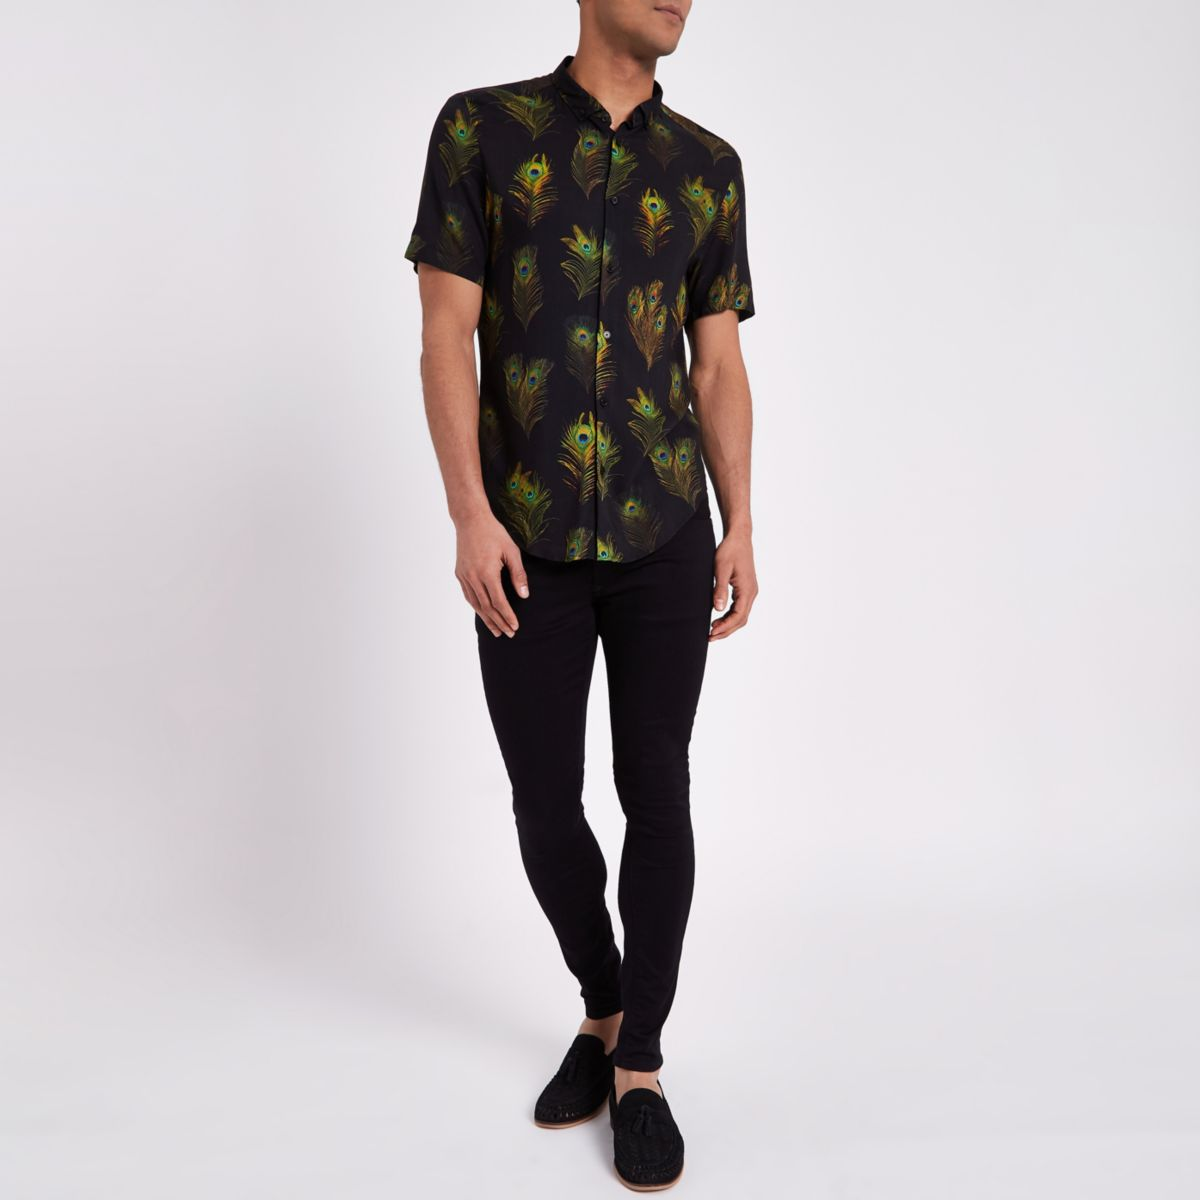 short sleeve slim fit Black peacock shirt AEwqCa5